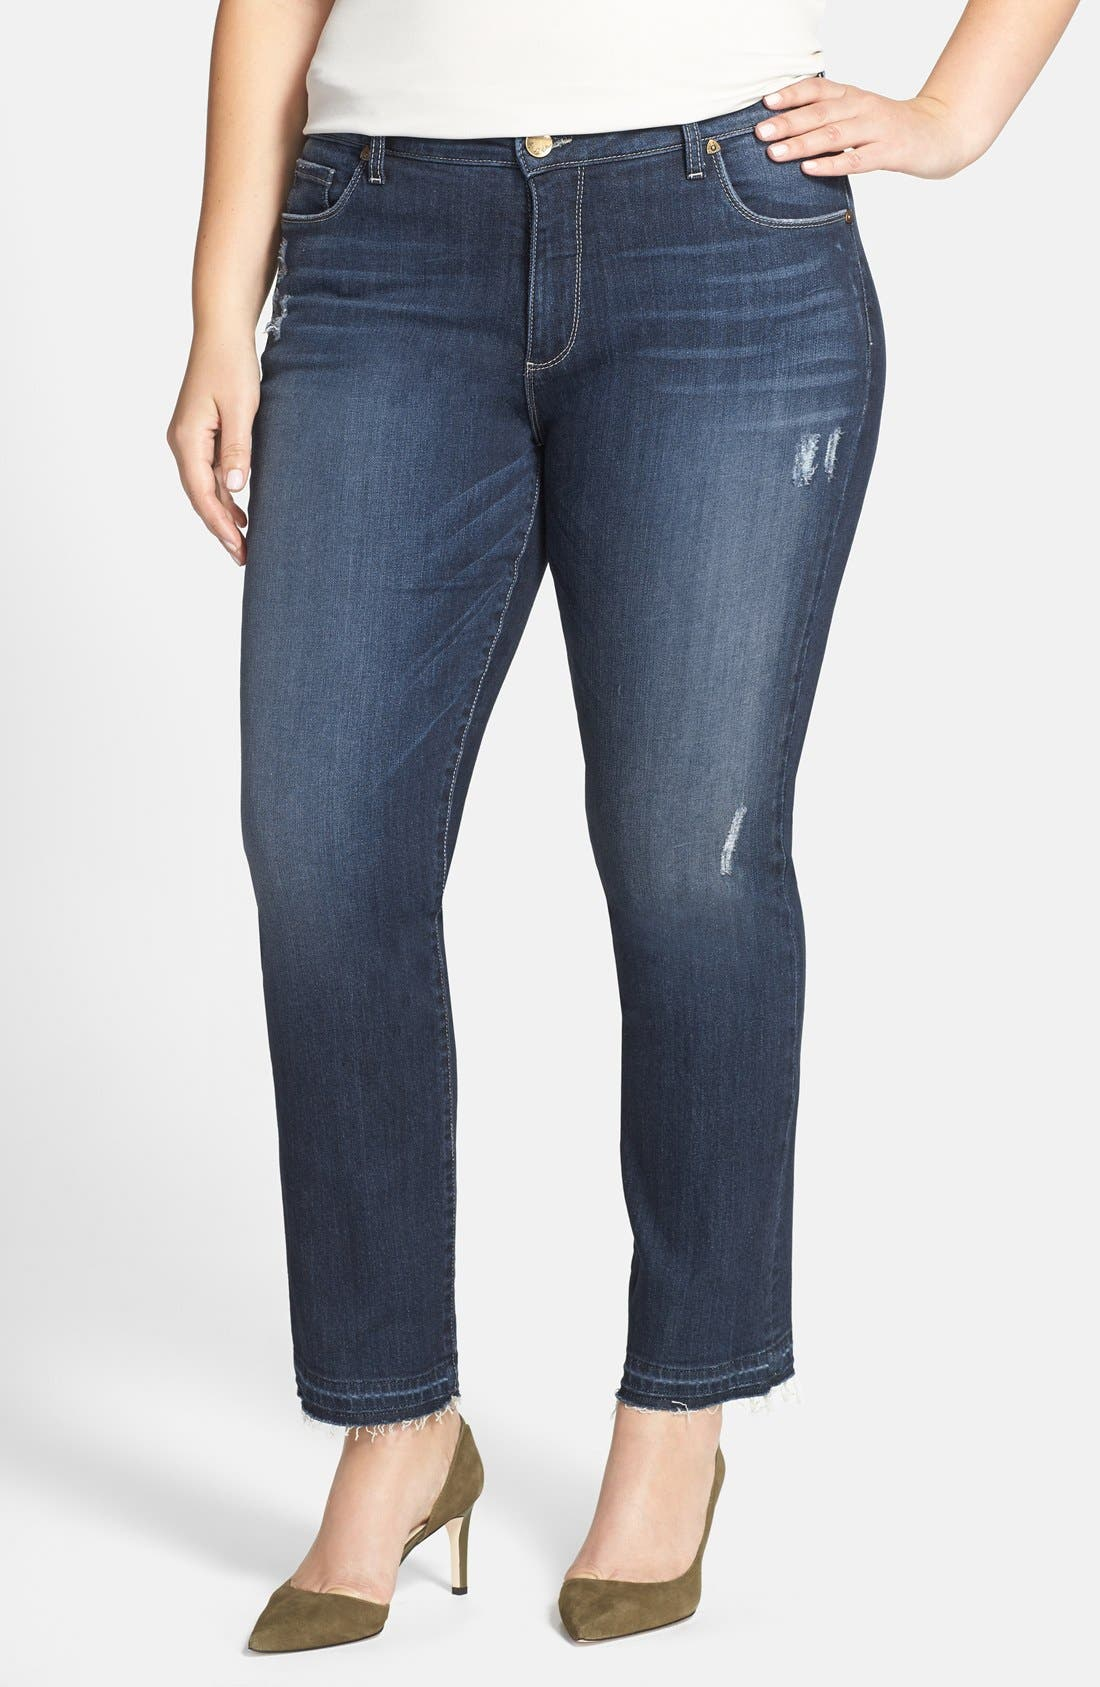 Alternate Image 1 Selected - KUT from the Kloth 'Reese' Released Hem Distressed Stretch Ankle Jeans (Hard) (Plus Size)